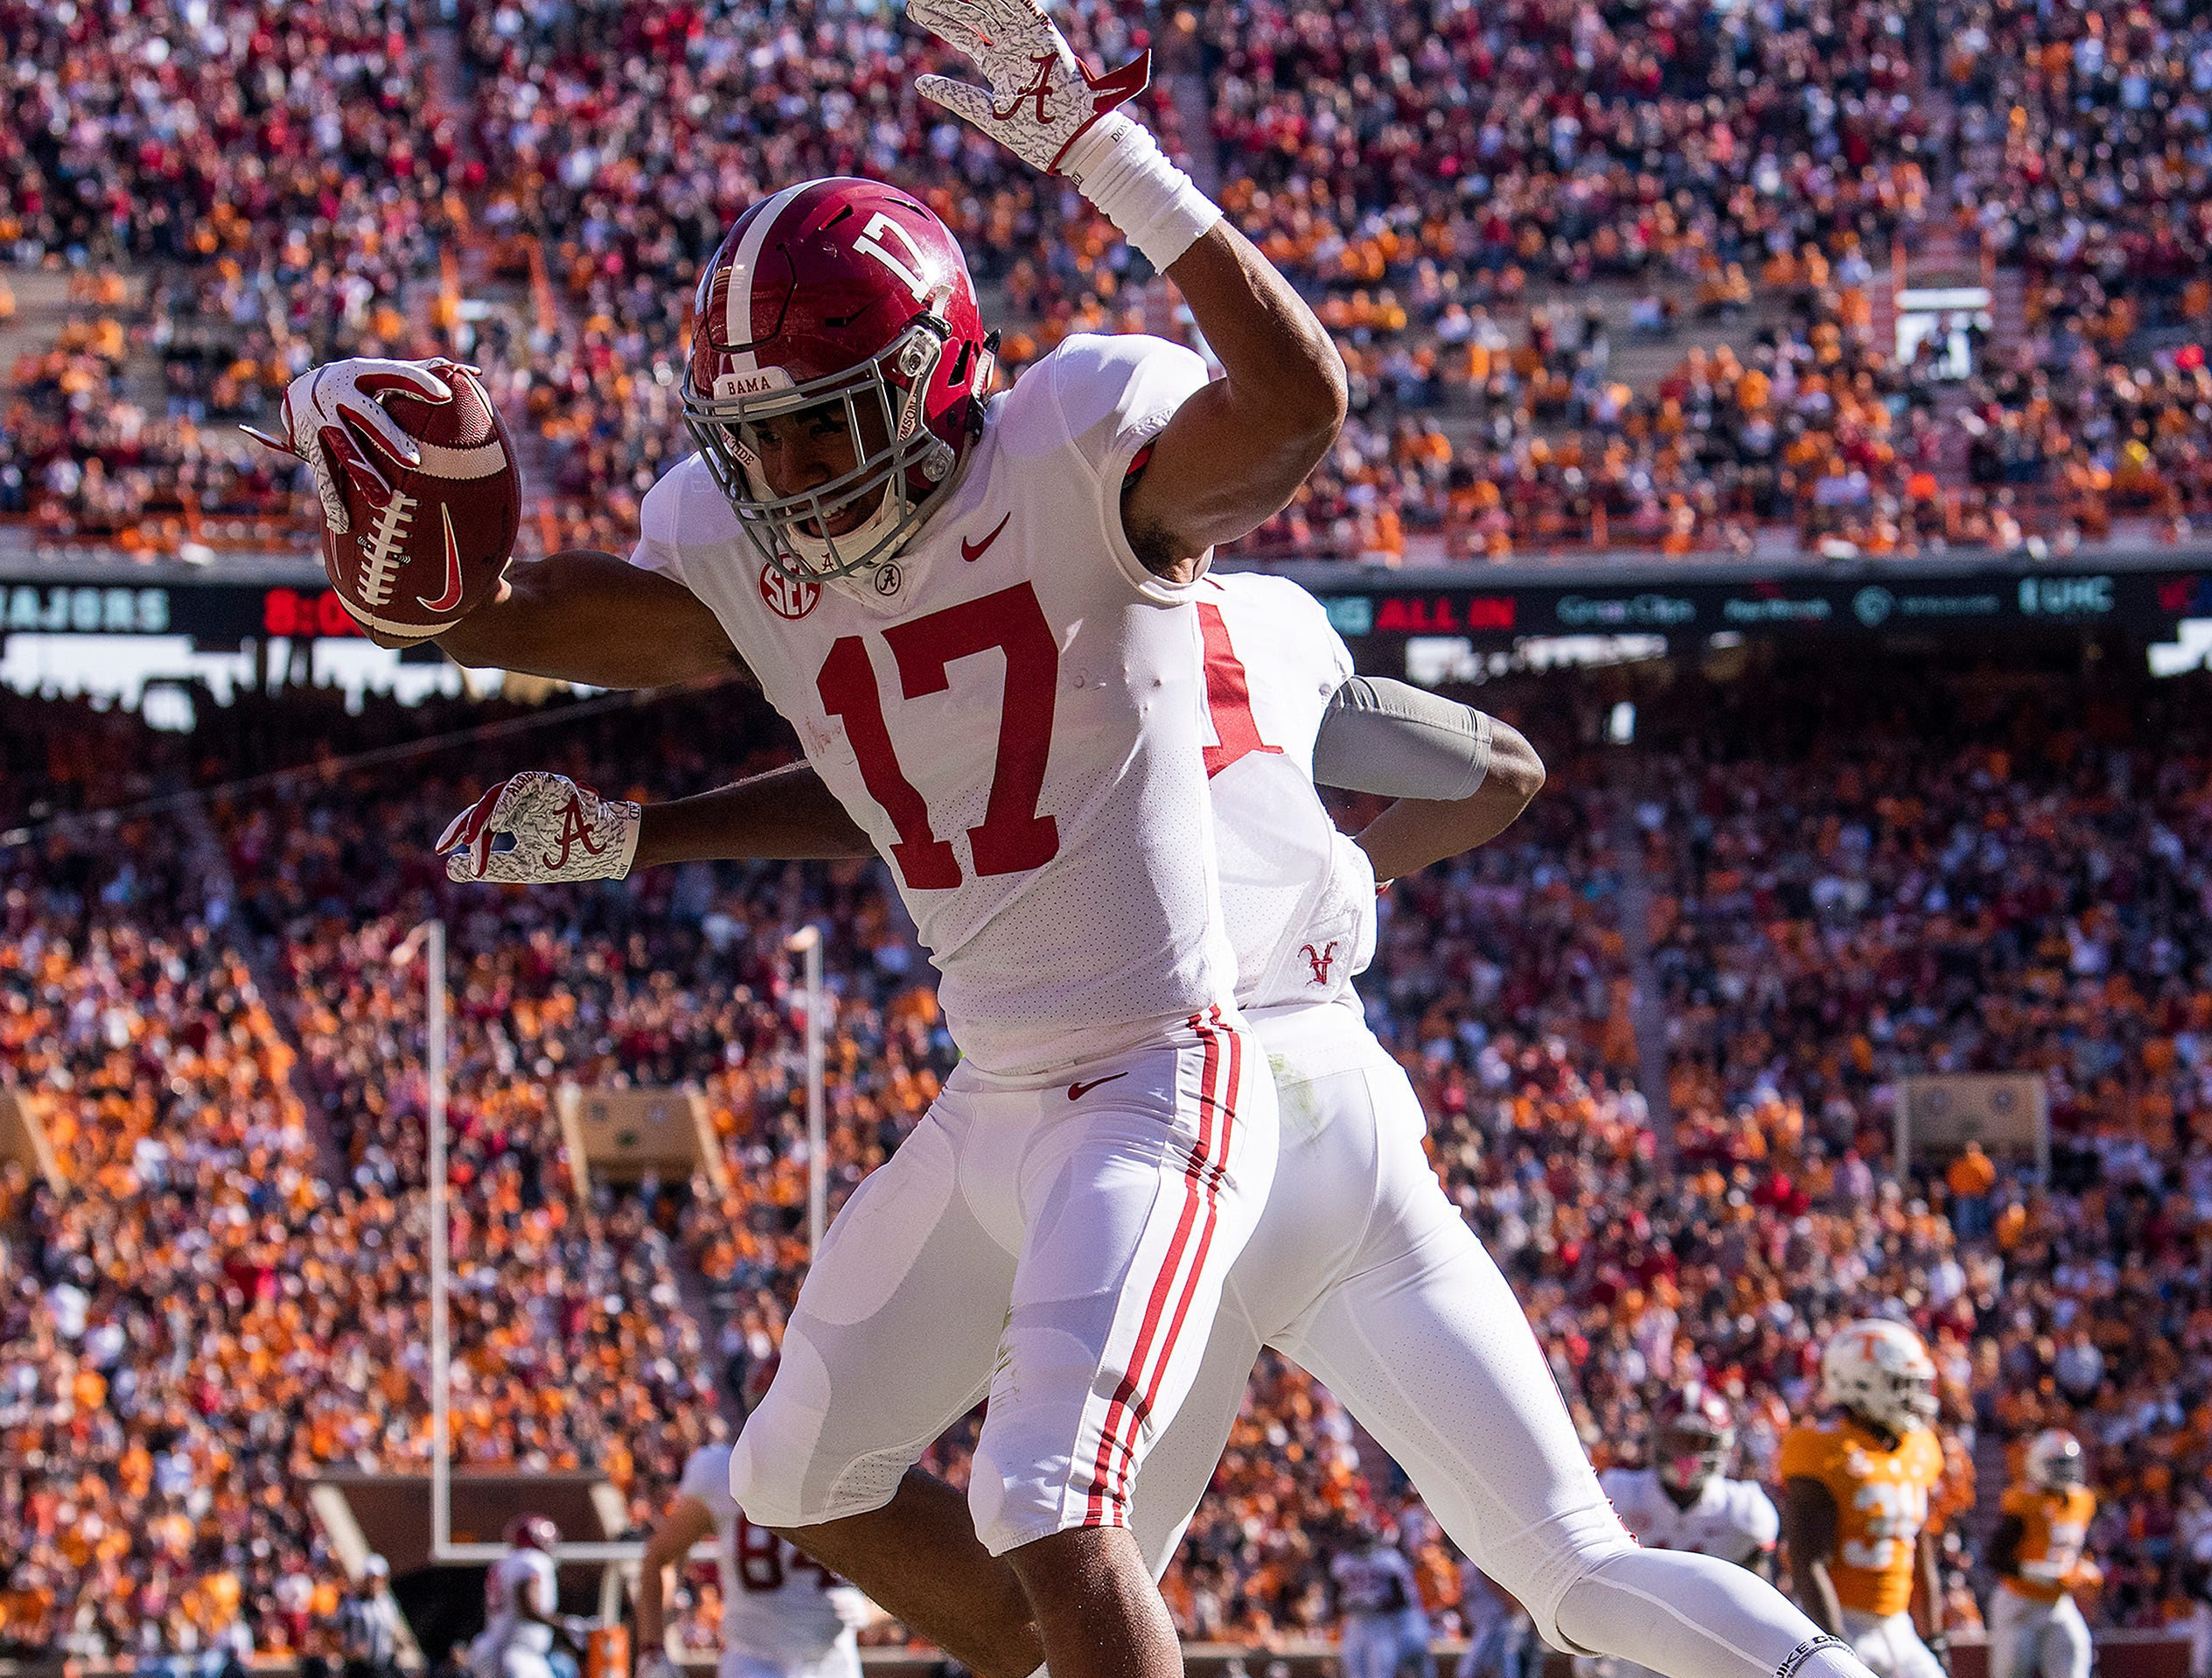 Alabama wide receiver Jaylen Waddle (17) celebrates a touchdown against Tennessee in first half action at Neyland Stadium in Knoxville, Tn., on Saturday October 20, 2018.